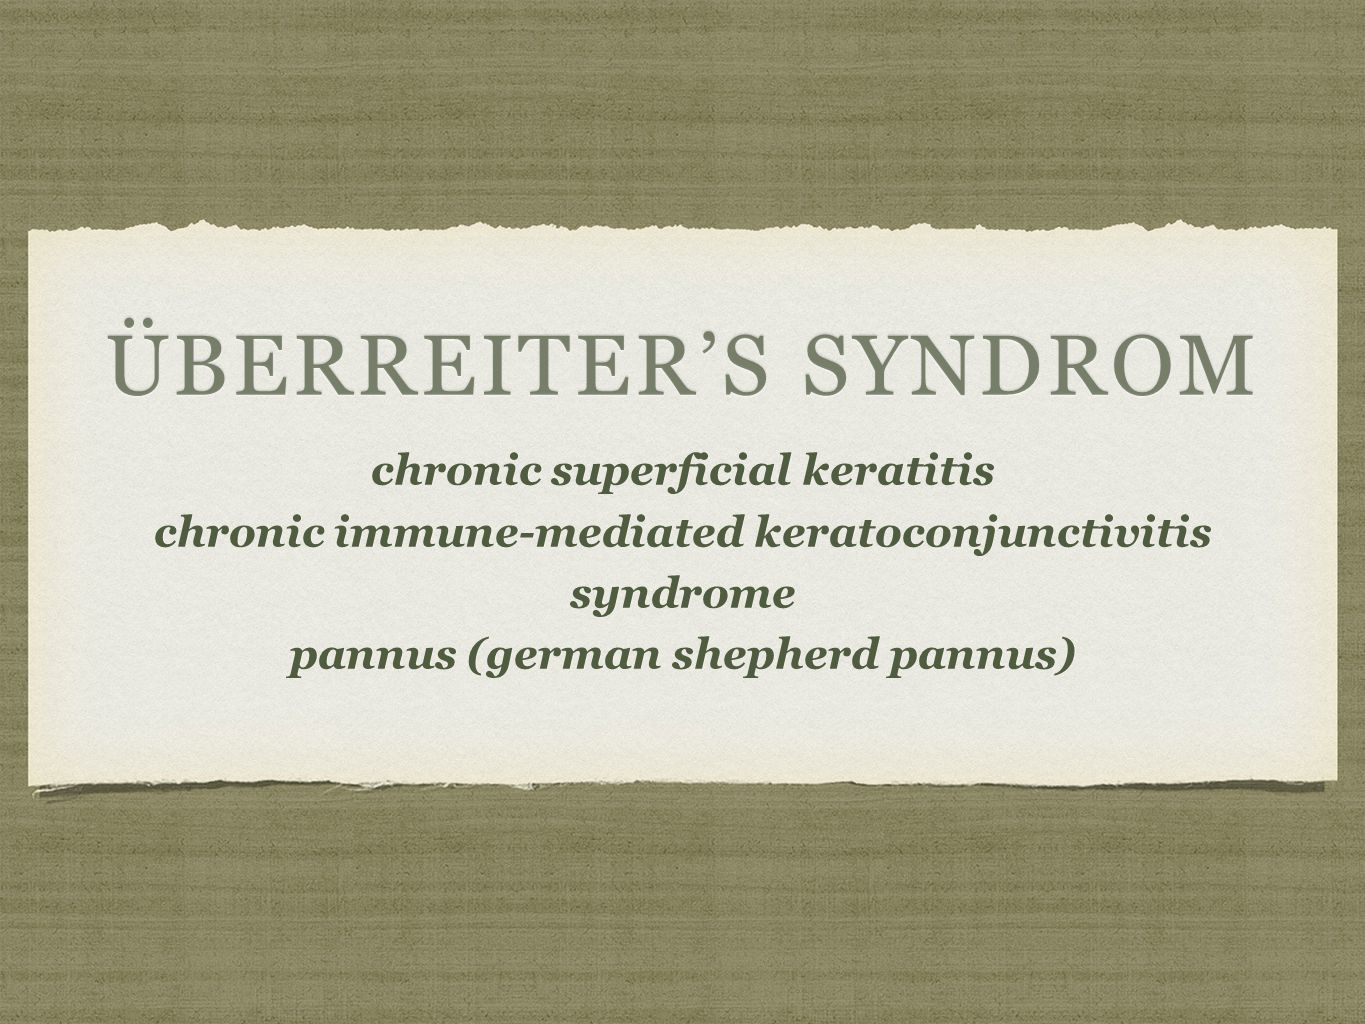 ÜBERREITER'S SYNDROM chronic superficial keratitischronic superficial keratitis chronic immune-mediated keratoconjunctivitis syndrome pannus (german shepherd pannus)pannus (german shepherd pannus)